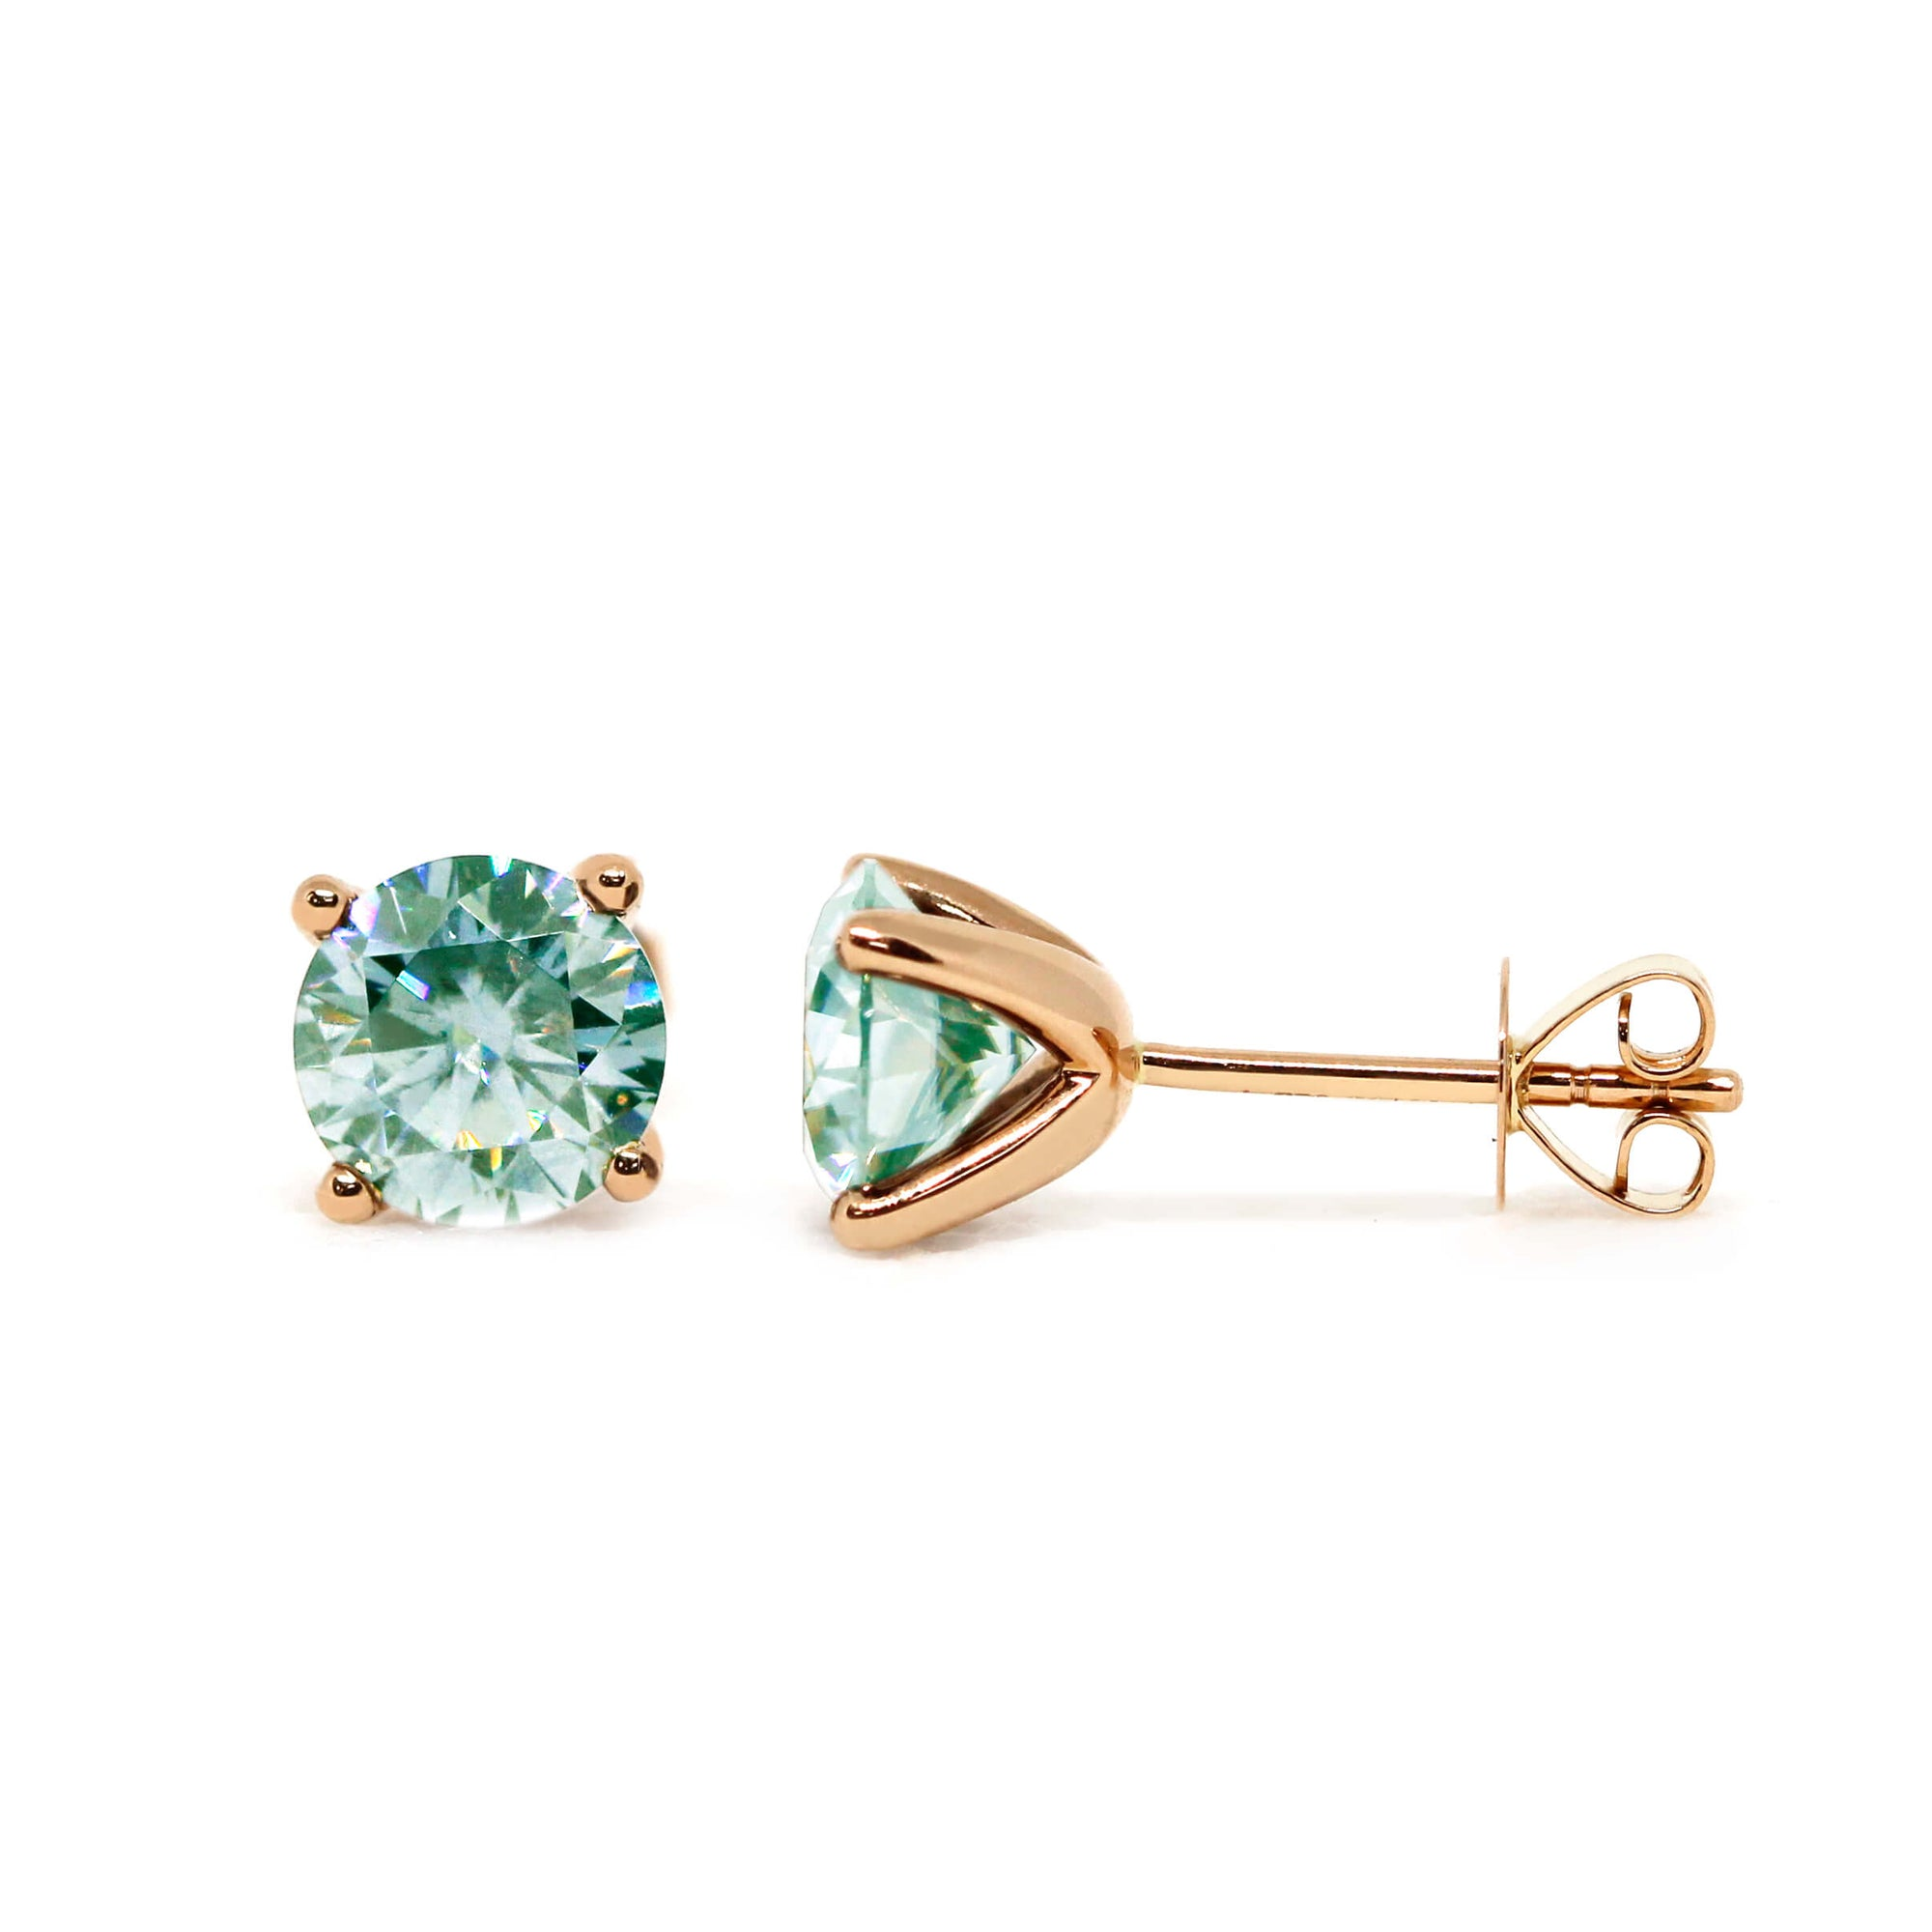 Mint Green Moissanite Solitaire 18K Yellow Gold Stud Earrings - Lecaine Gems Moissanite